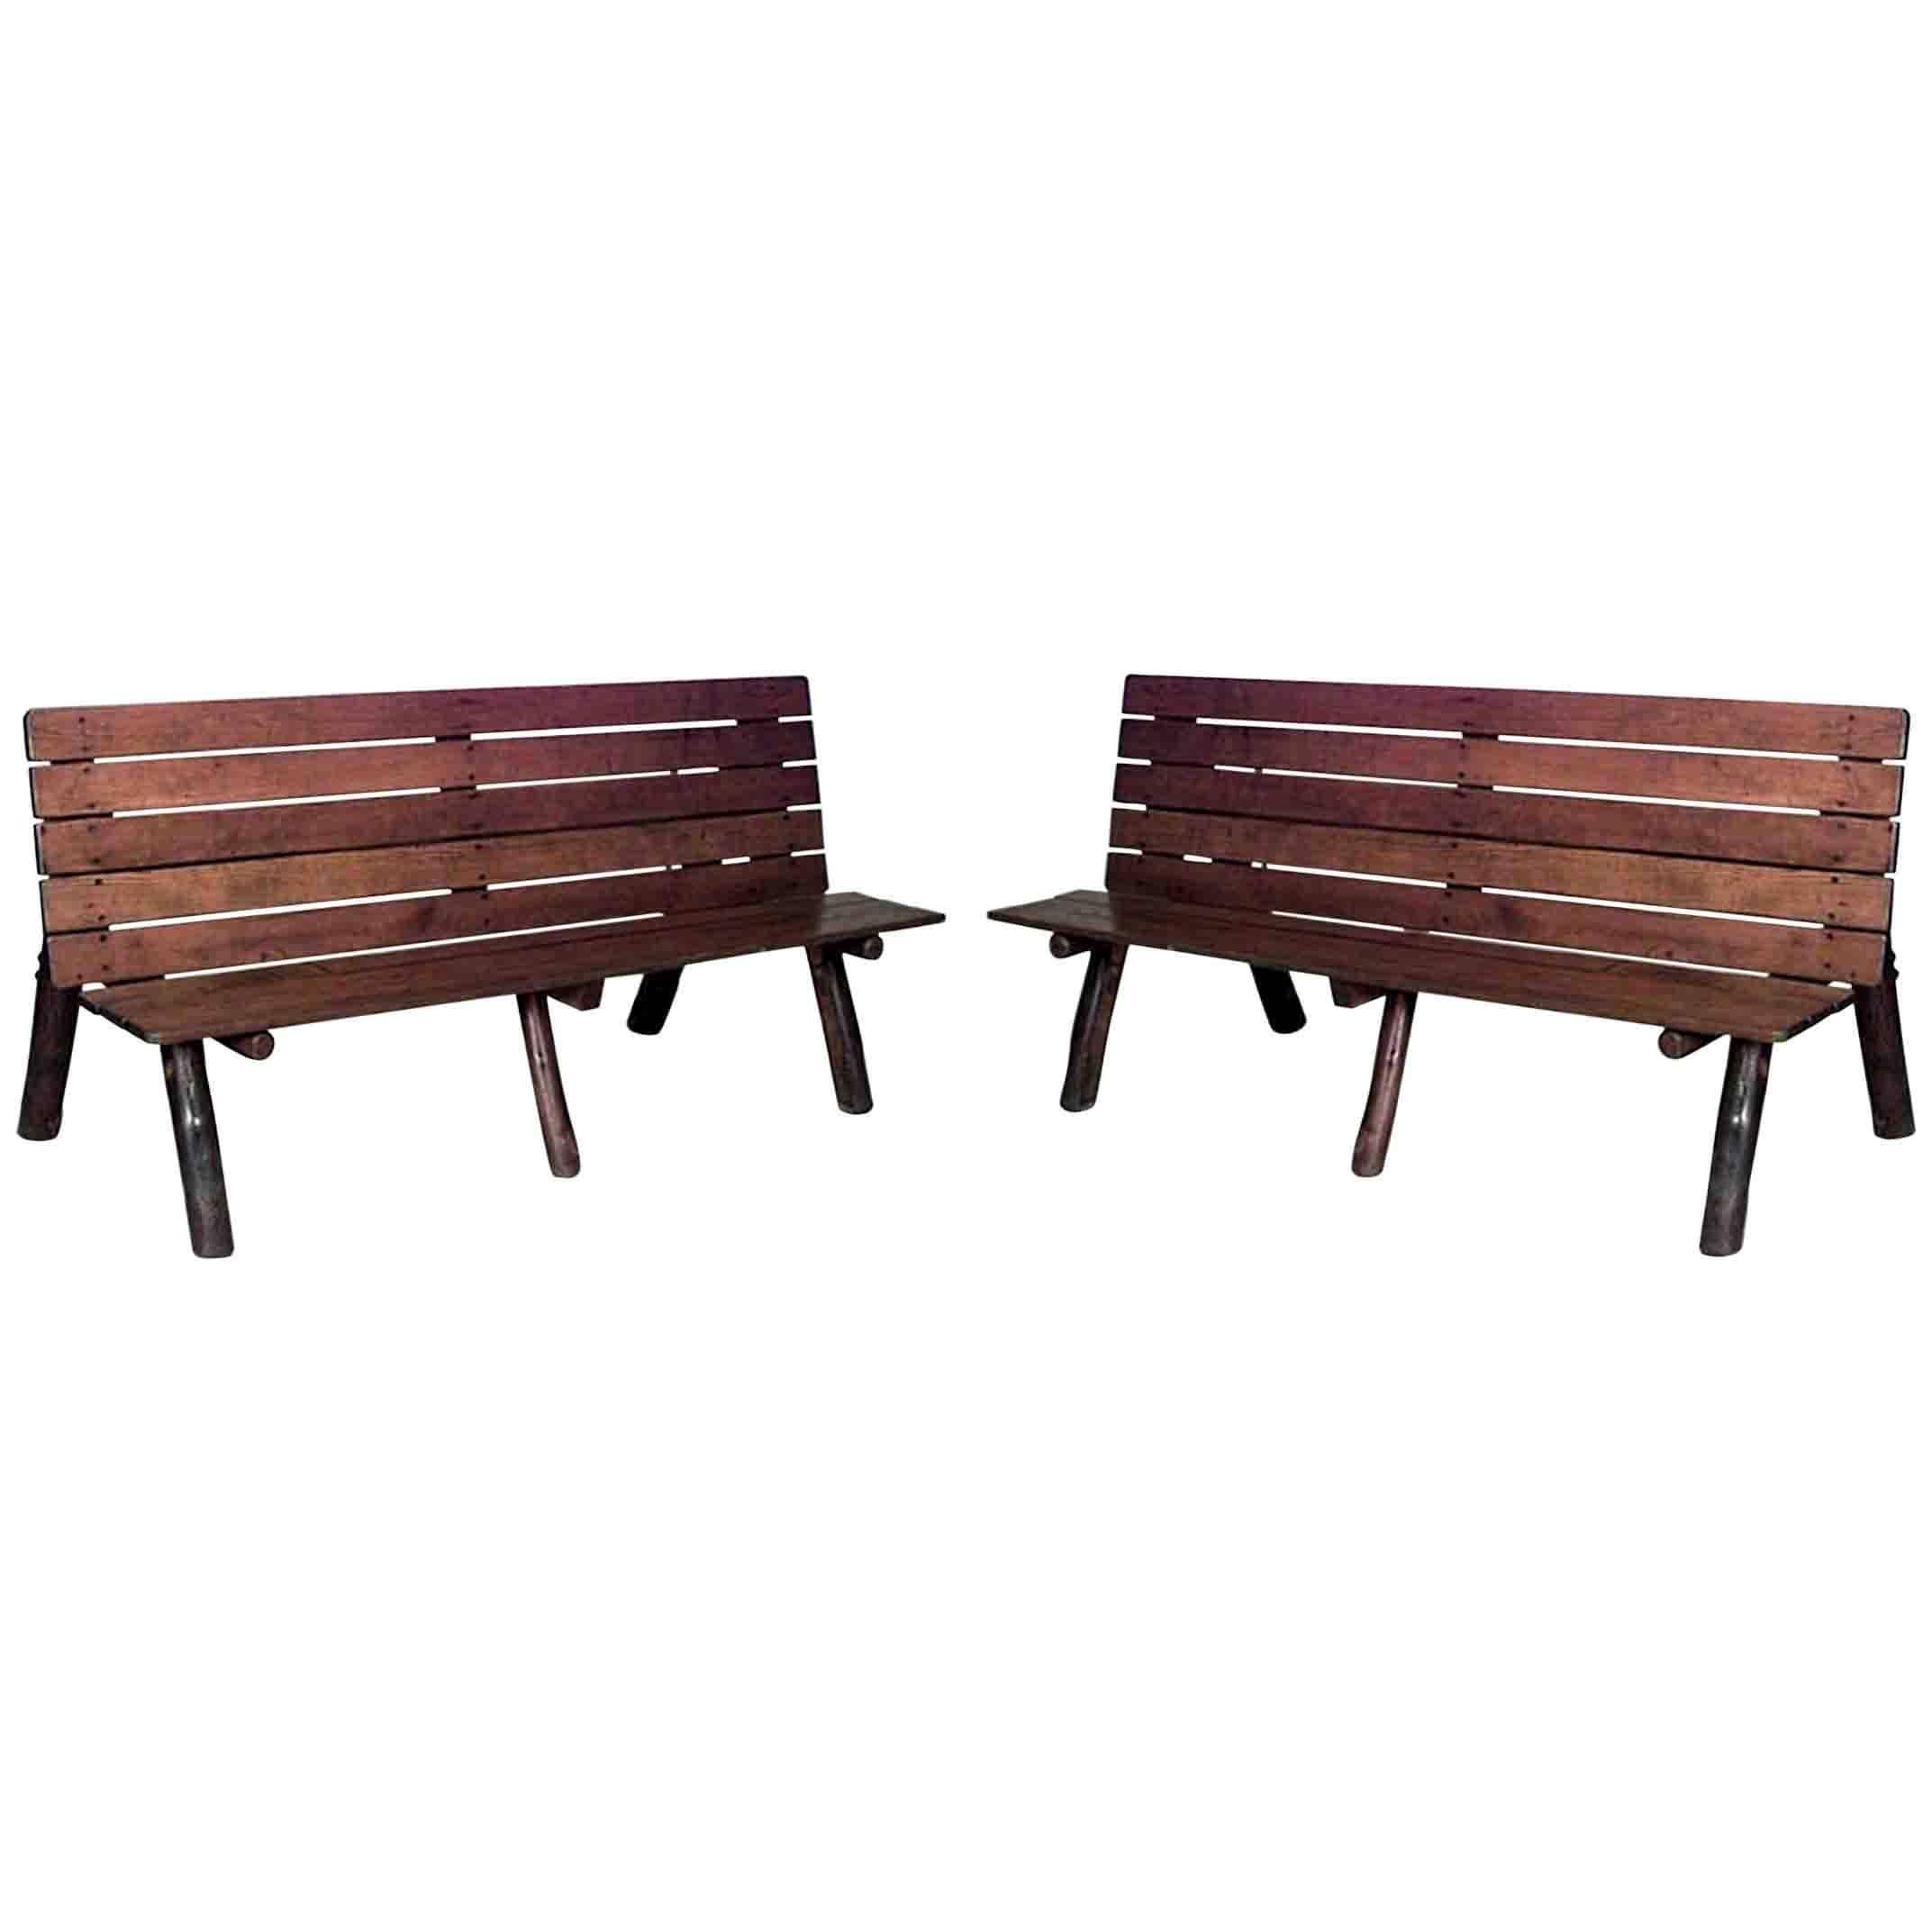 Pair Of American Rustic Old Hickory Metamorphic Picnic Tables Or Benches